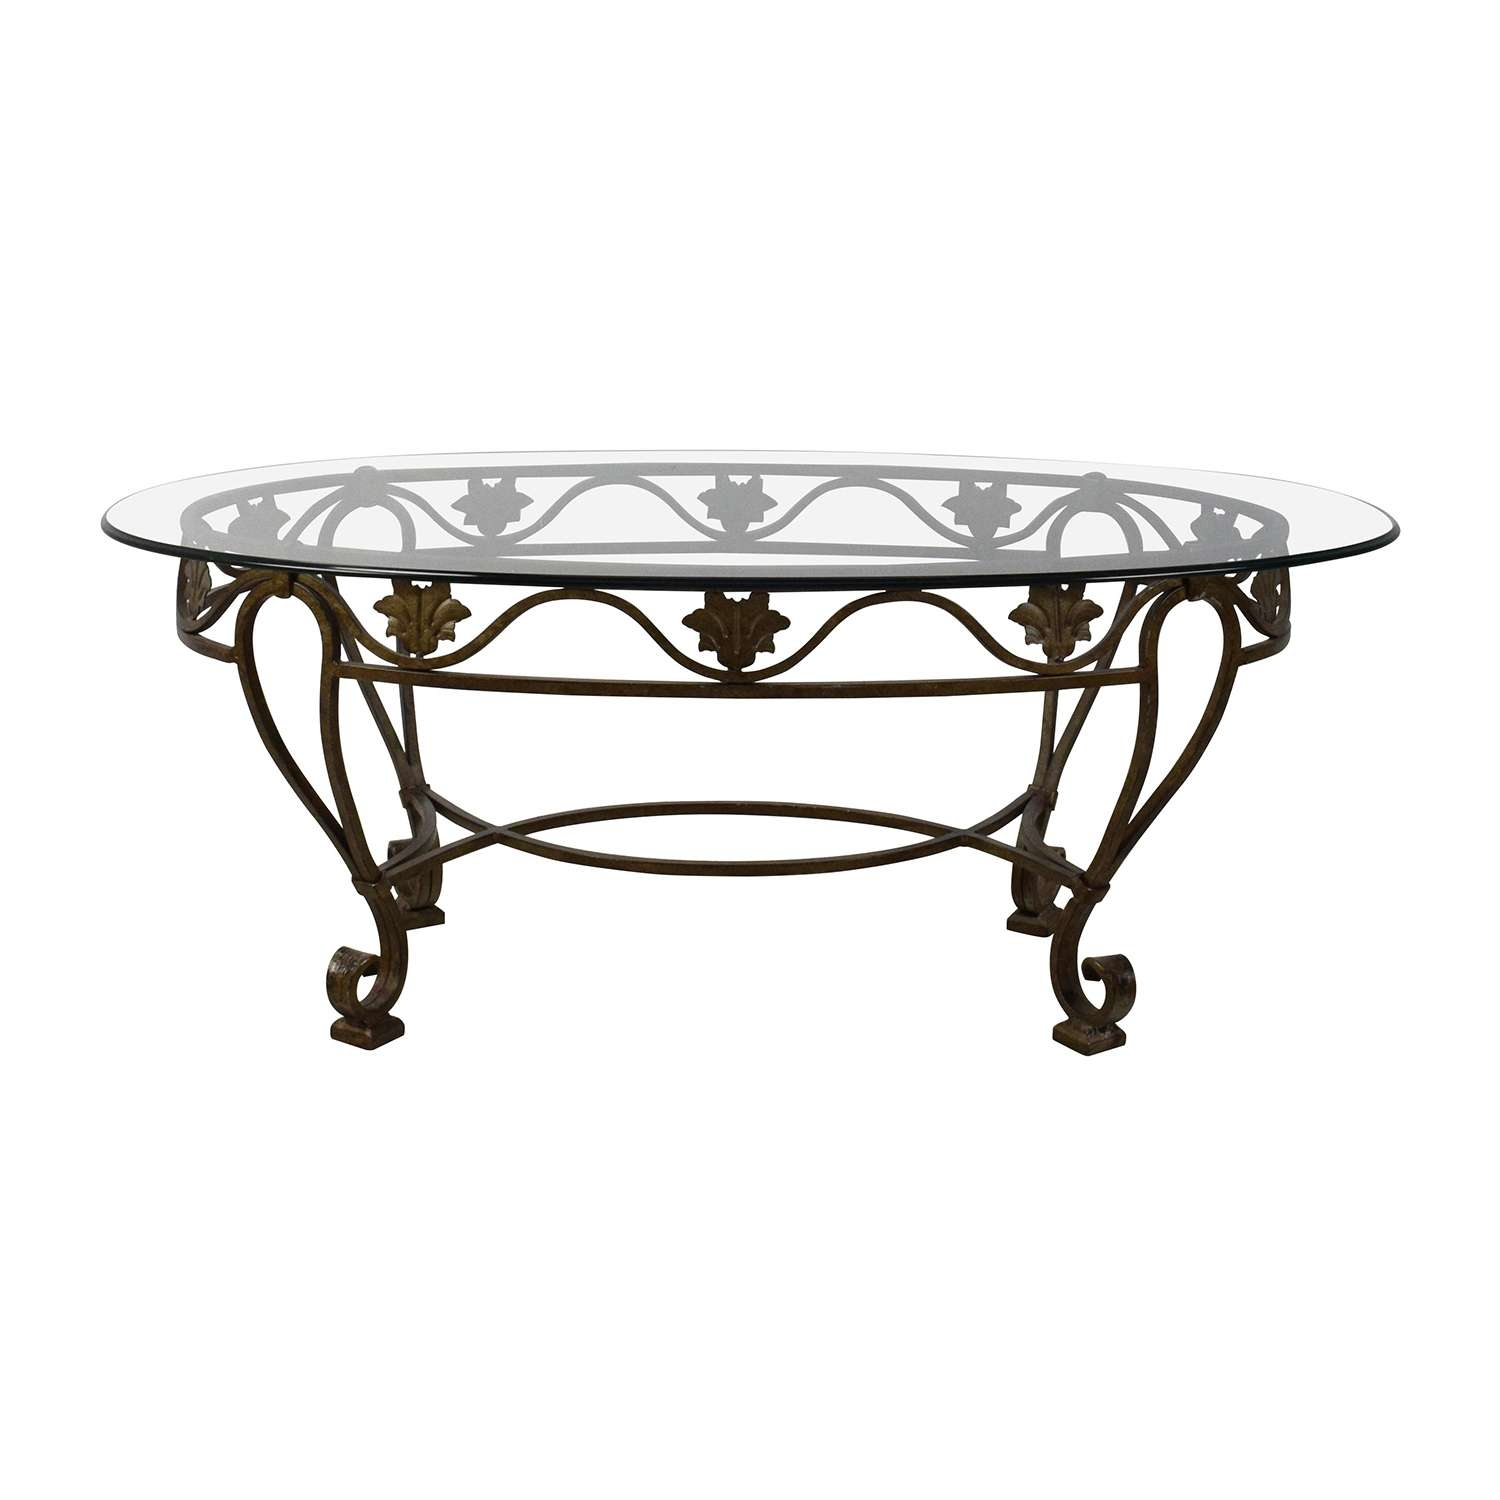 [%popular Antique Glass Top Coffee Tables Within 90% Off – Iron Cast Glass Top Antique Coffee Table / Tables|90% Off – Iron Cast Glass Top Antique Coffee Table / Tables Intended For Popular Antique Glass Top Coffee Tables%] (View 9 of 20)